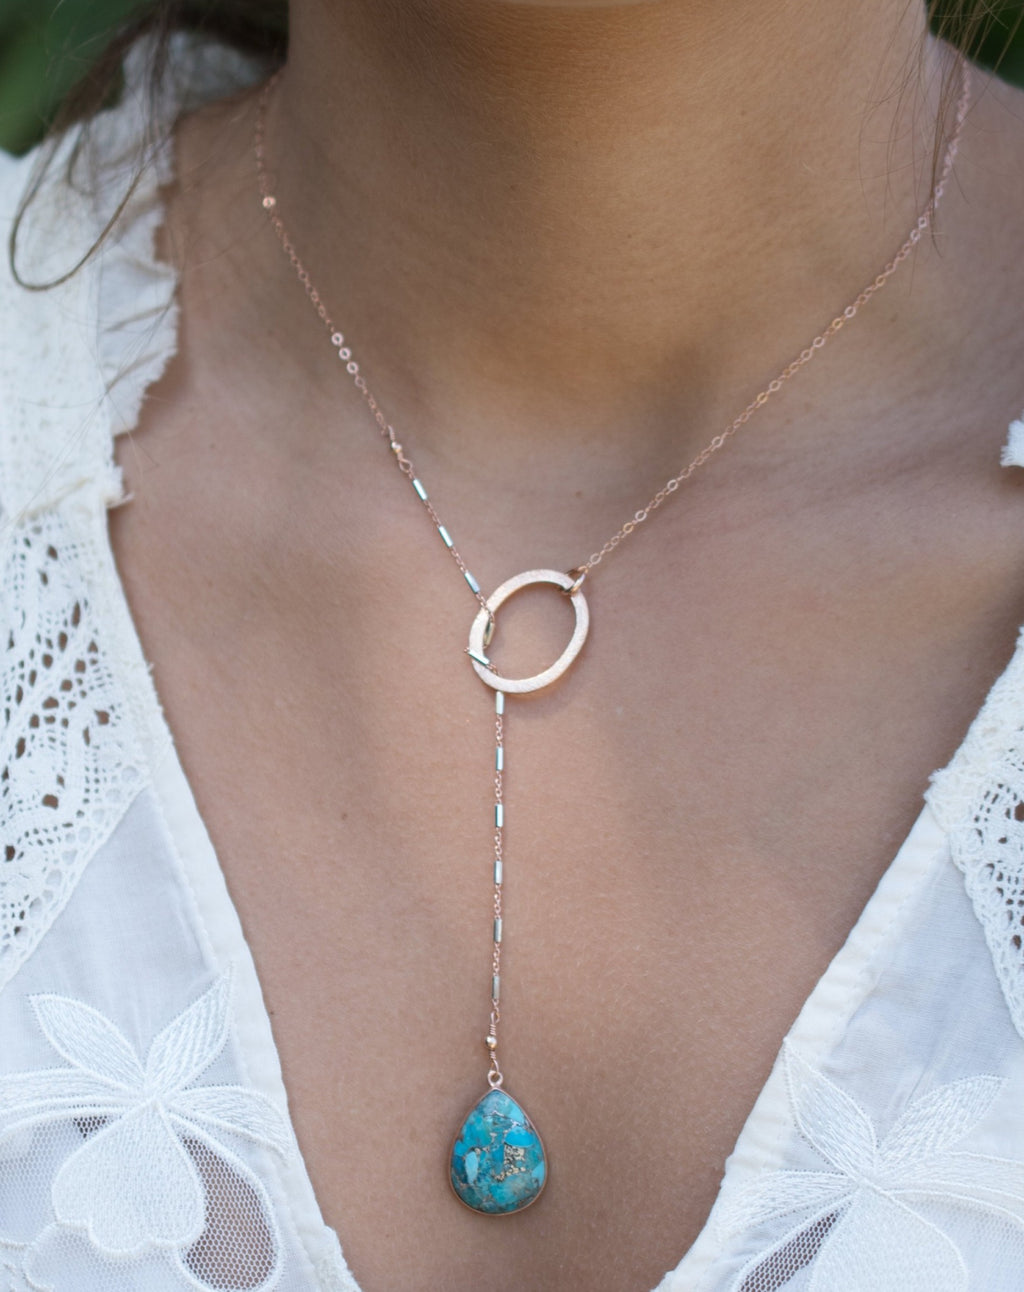 Isabel Lariat Necklace * Copper Turquoise* Rose Gold Filled, Gold Filled or Sterling Silver * BJN060